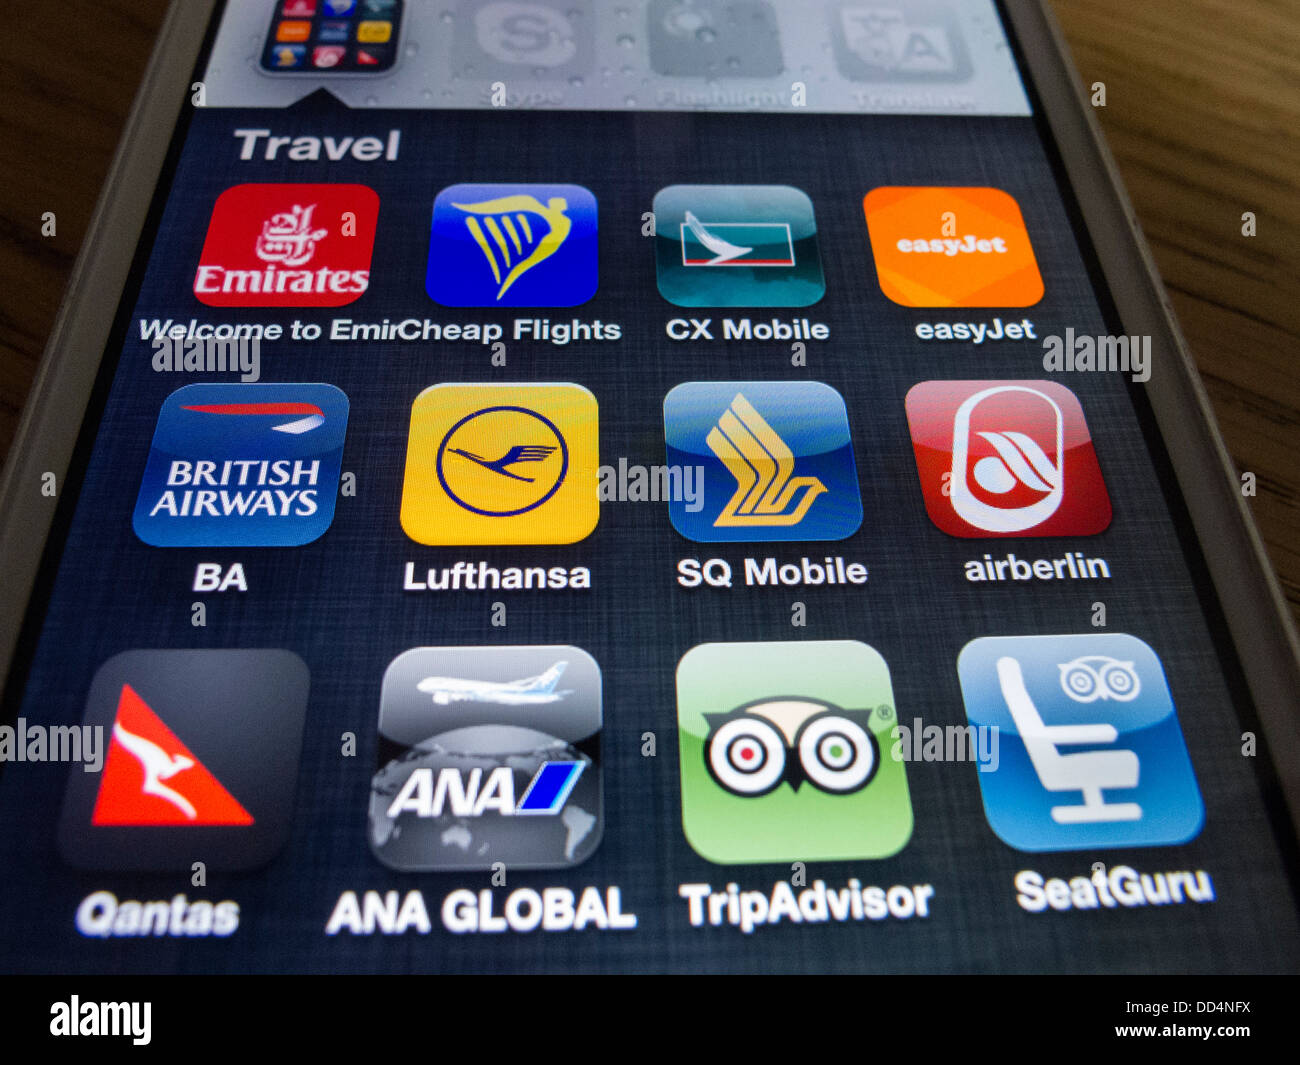 Detail of many travel and airline apps on an iPhone 5 smart phone - Stock Image